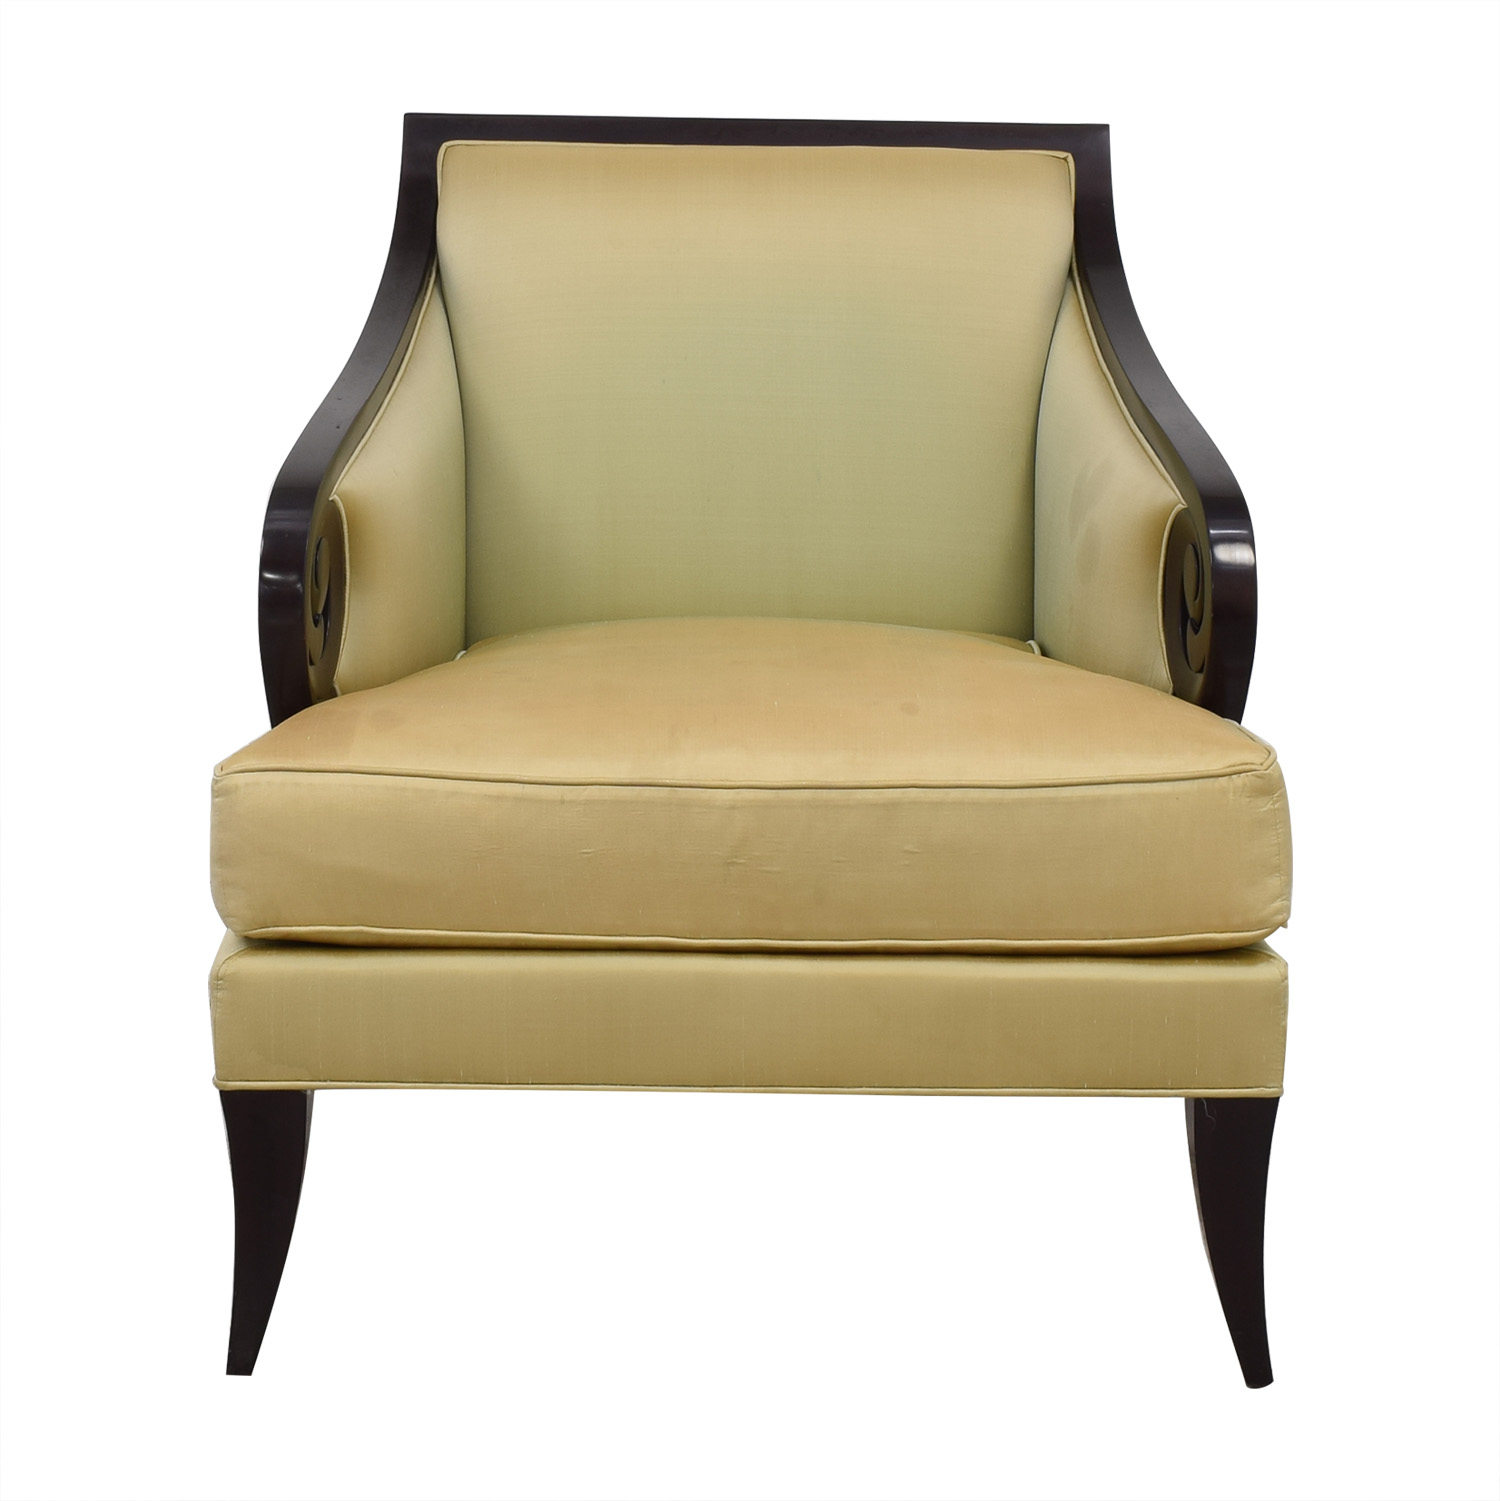 buy Christopher Guy Ornate Arm Chair Christopher Guy